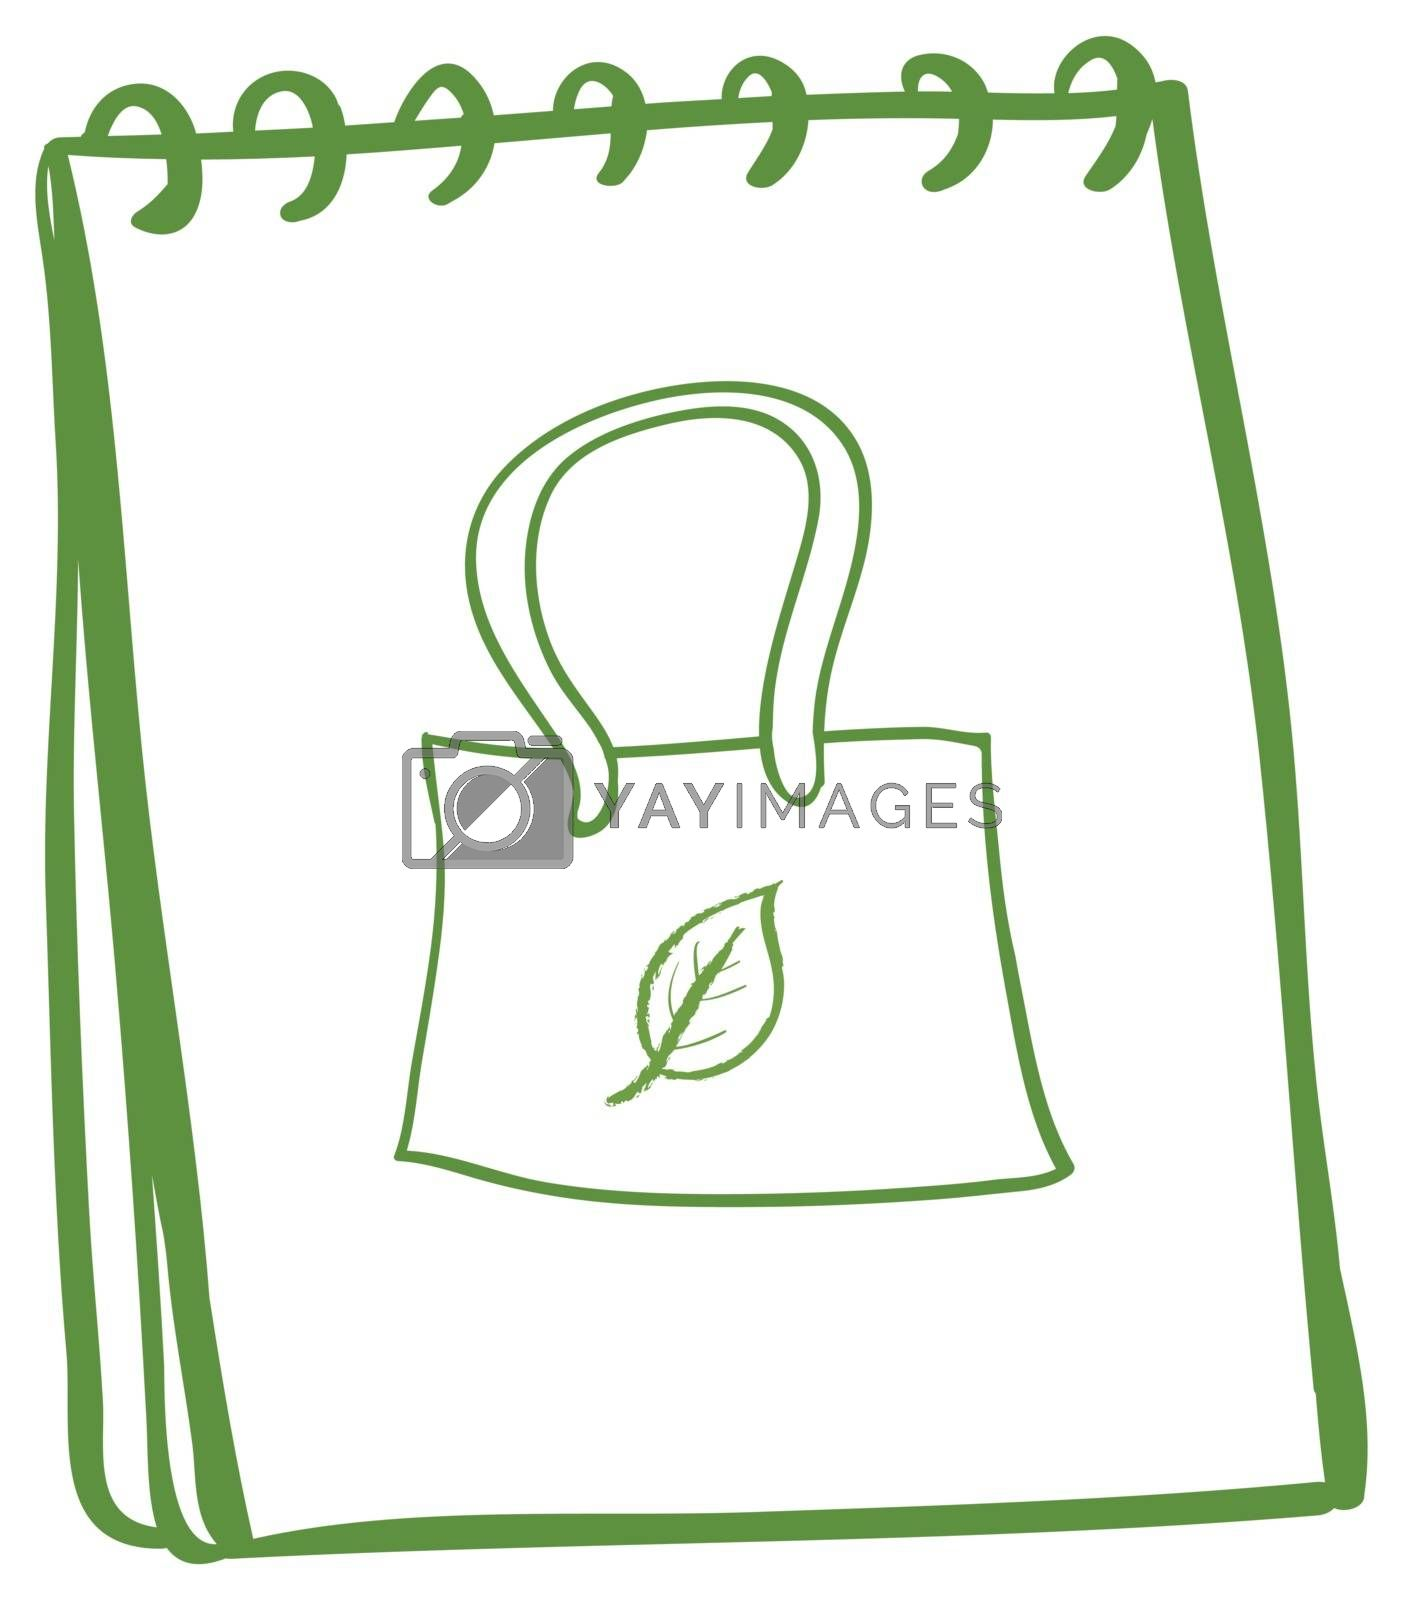 Illustration of a notebook with a sketch of a handbag at the cover page on a white background